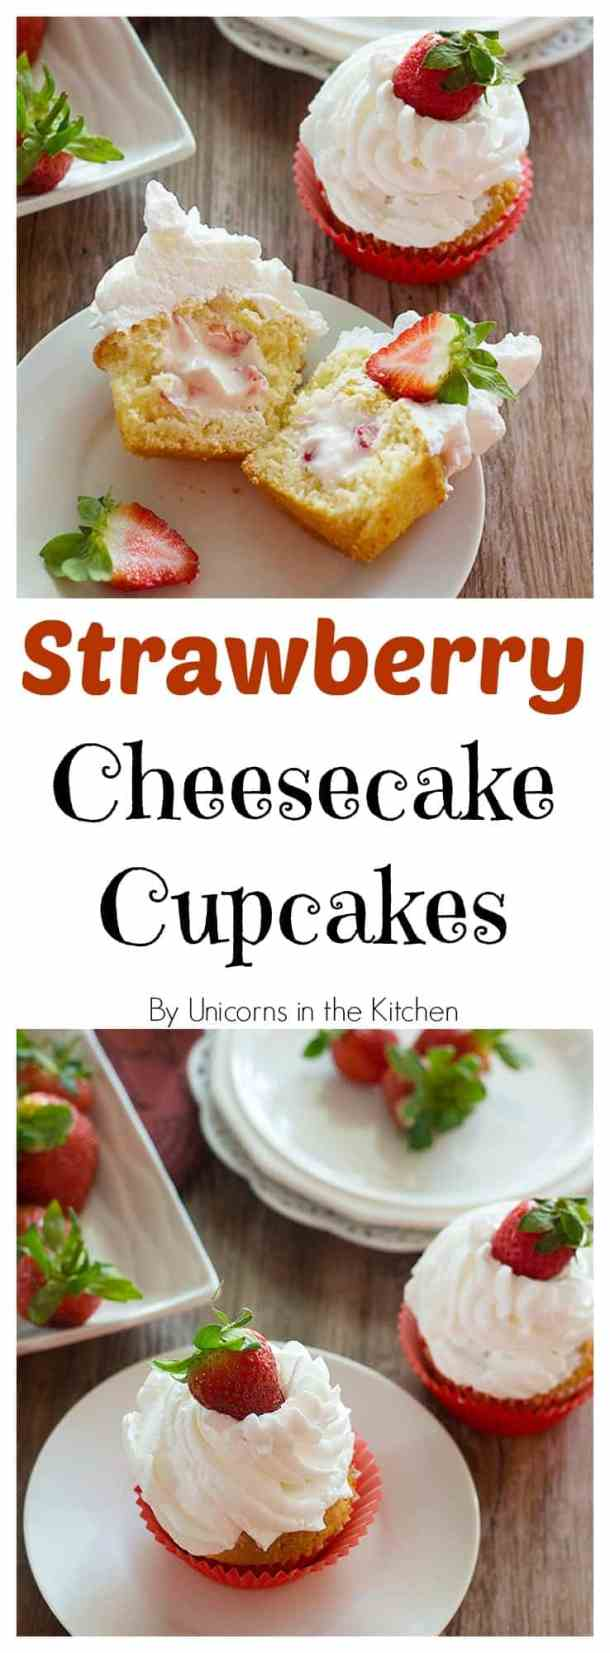 Strawberry Cheesecake Cupcakes are a match made in heaven! Enjoy them the most by adding some strawberries! They are fluffy, fresh and irresistibly delicious!